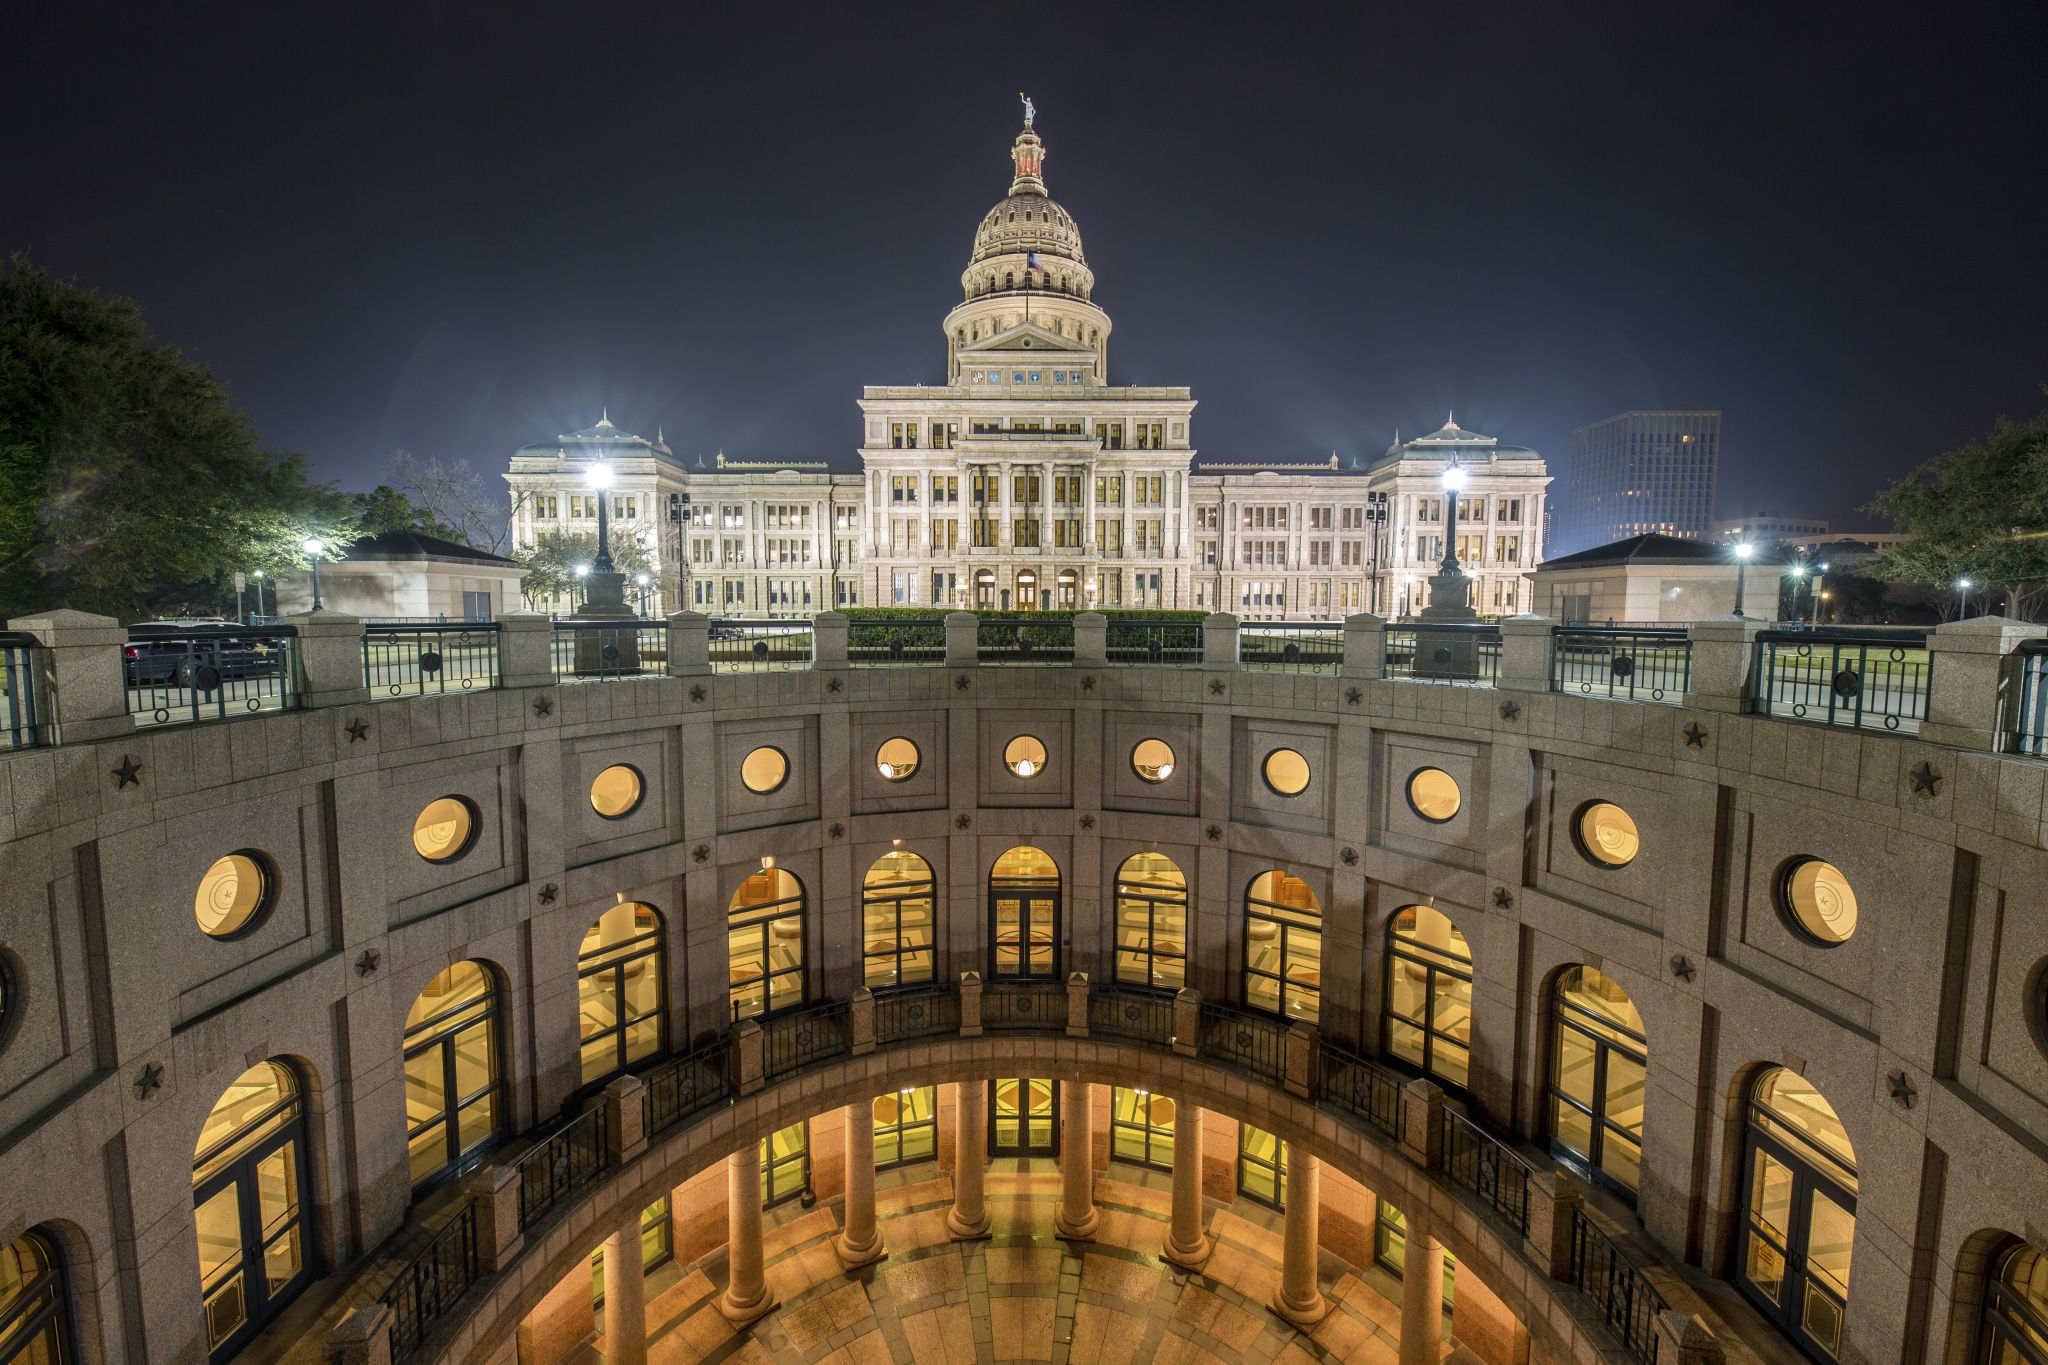 State Capitol of Texas, USA